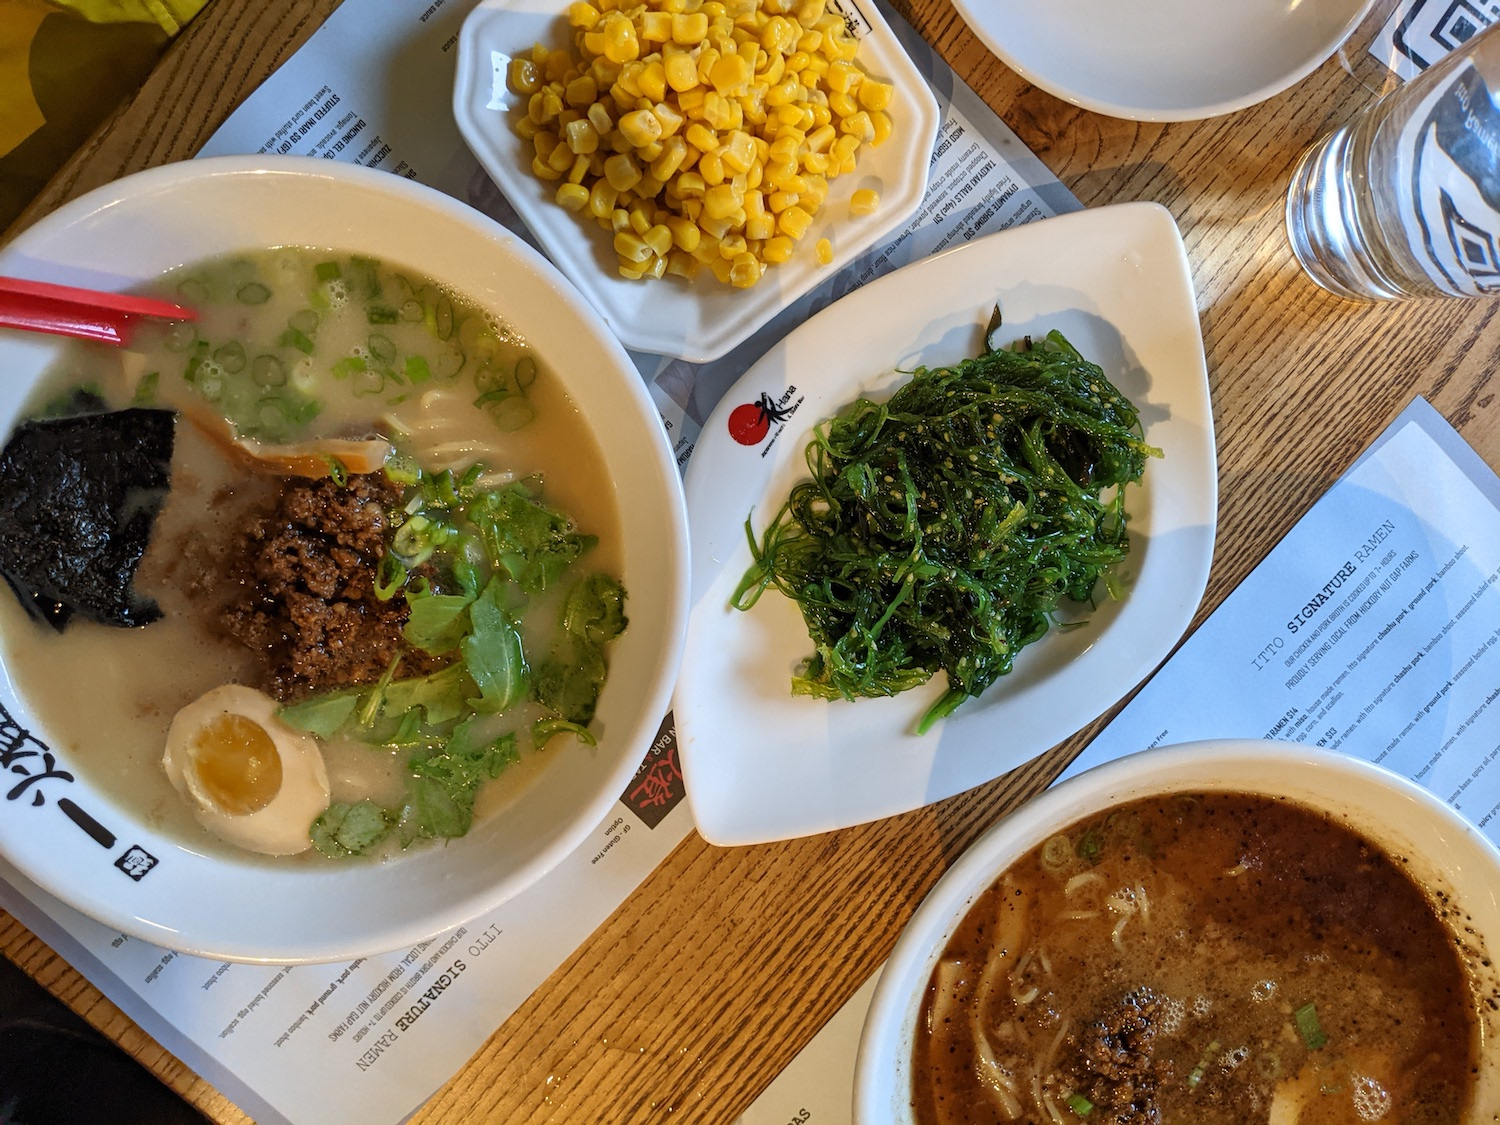 a flat lay photo of the Classic Ramen, seaweed salad, Deluxe Ramen, and a side of corn at Itto Ramen in West Asheville. The food is on a wooden table and the paper menus are underneath the plates and bowls.